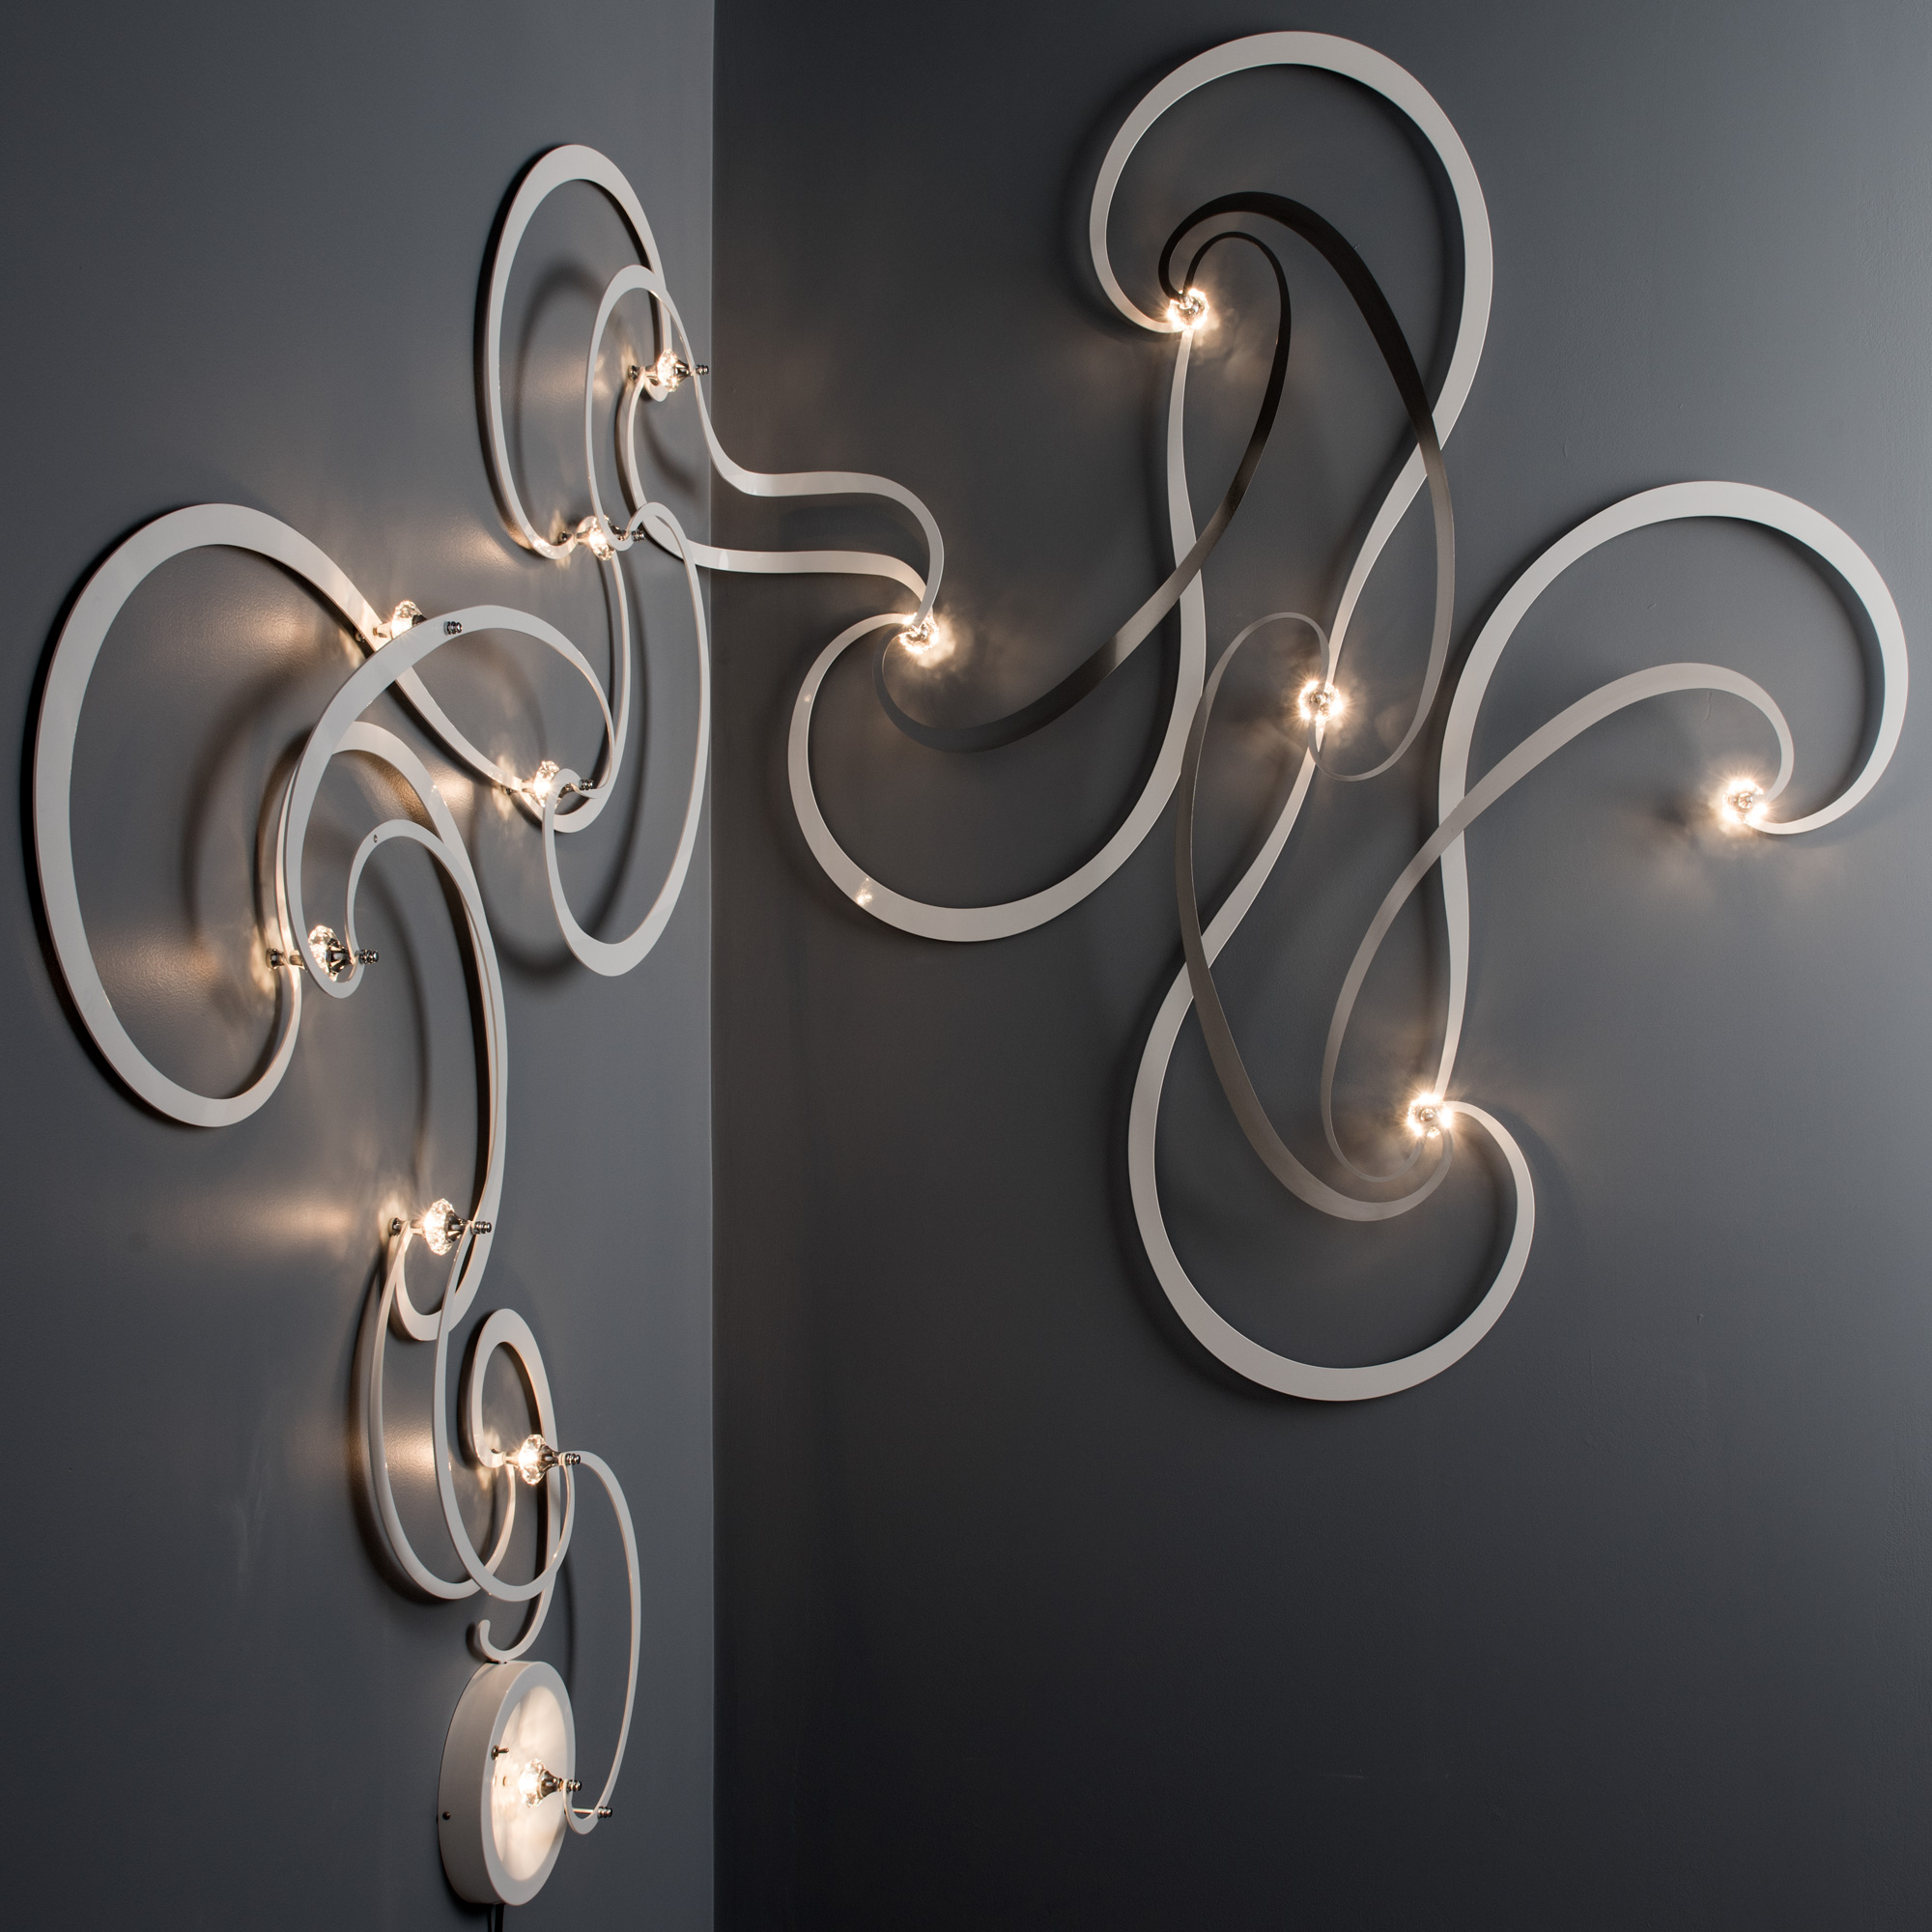 12 CRYSTAL NEBULA MODULAR LIGHTING SYSTEM